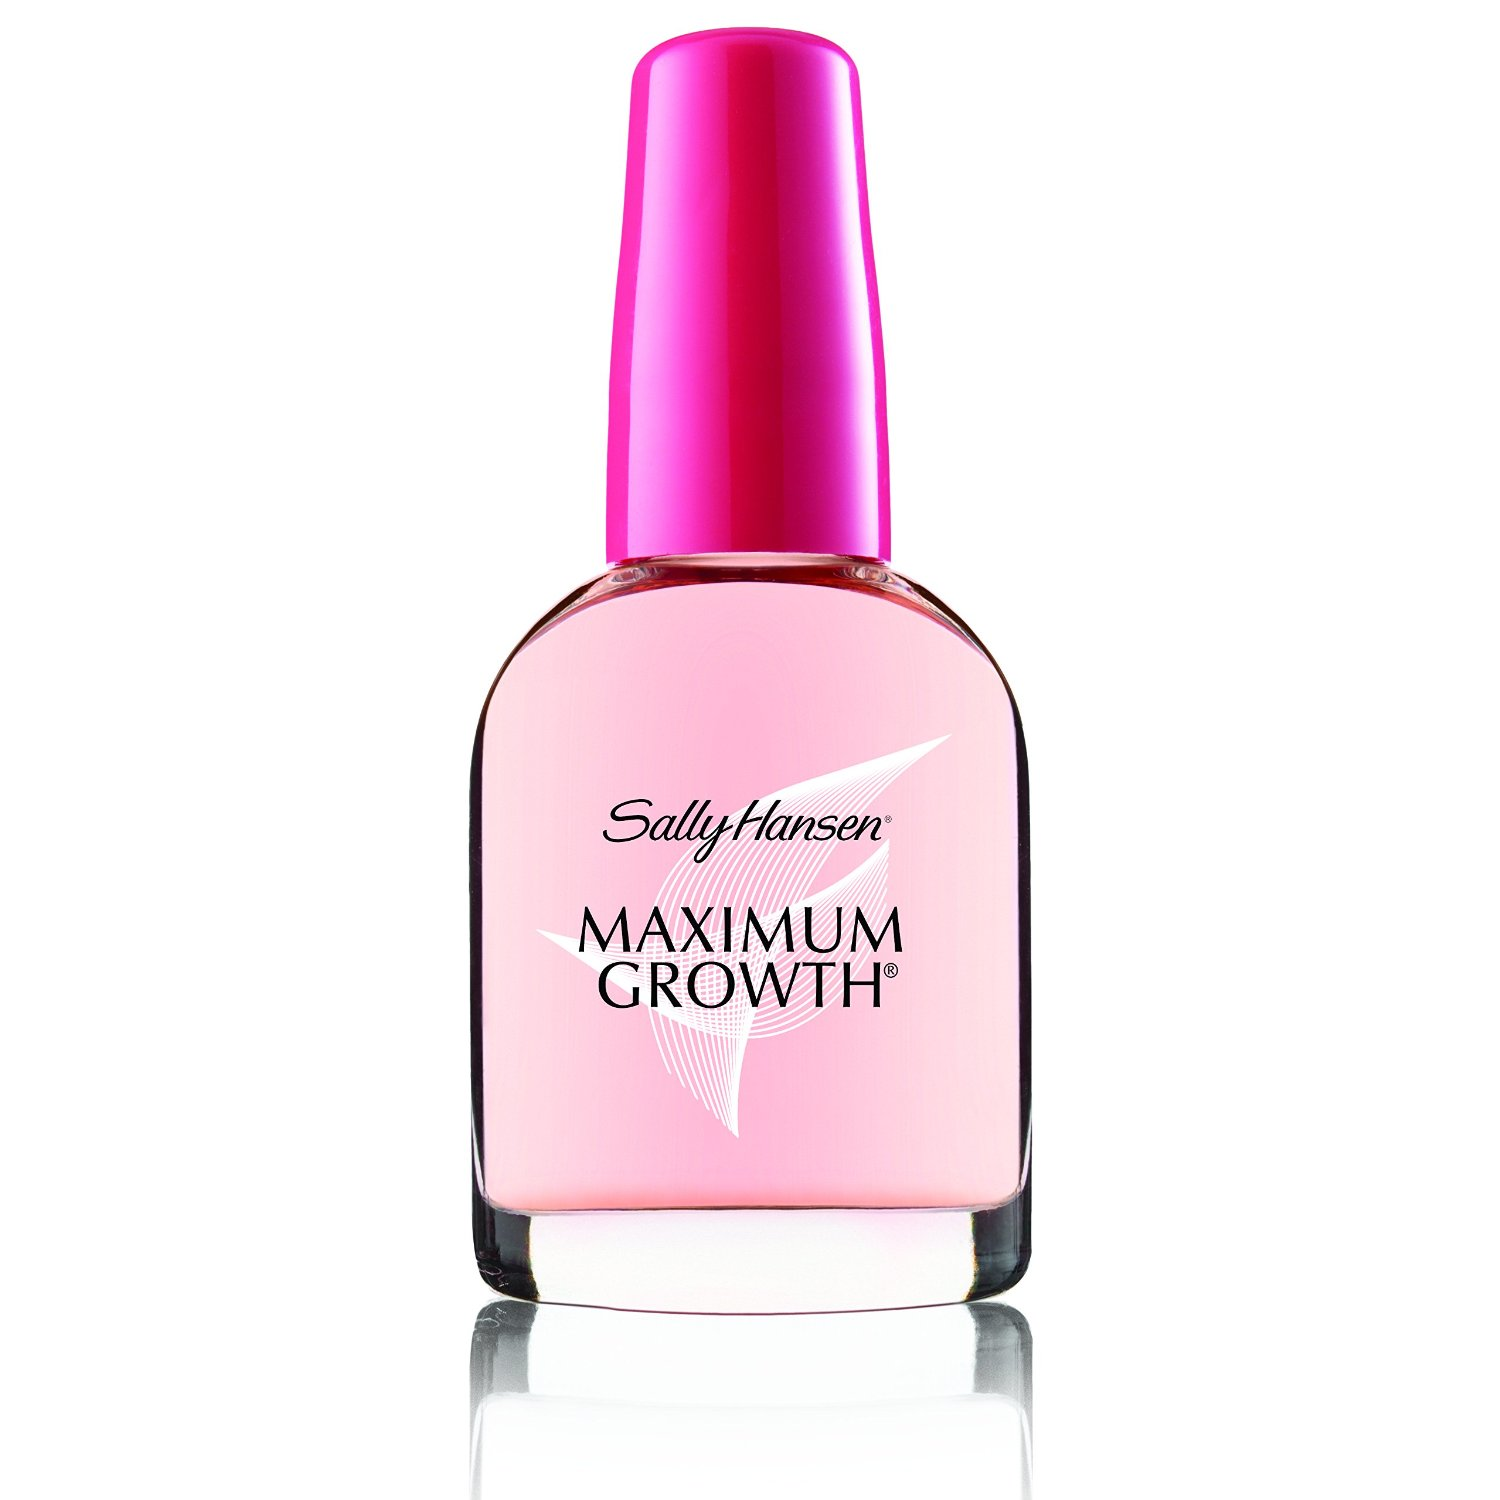 Best Nail Growth And Strengthener Polish: Nail Growth/Cure/Strengthener Review